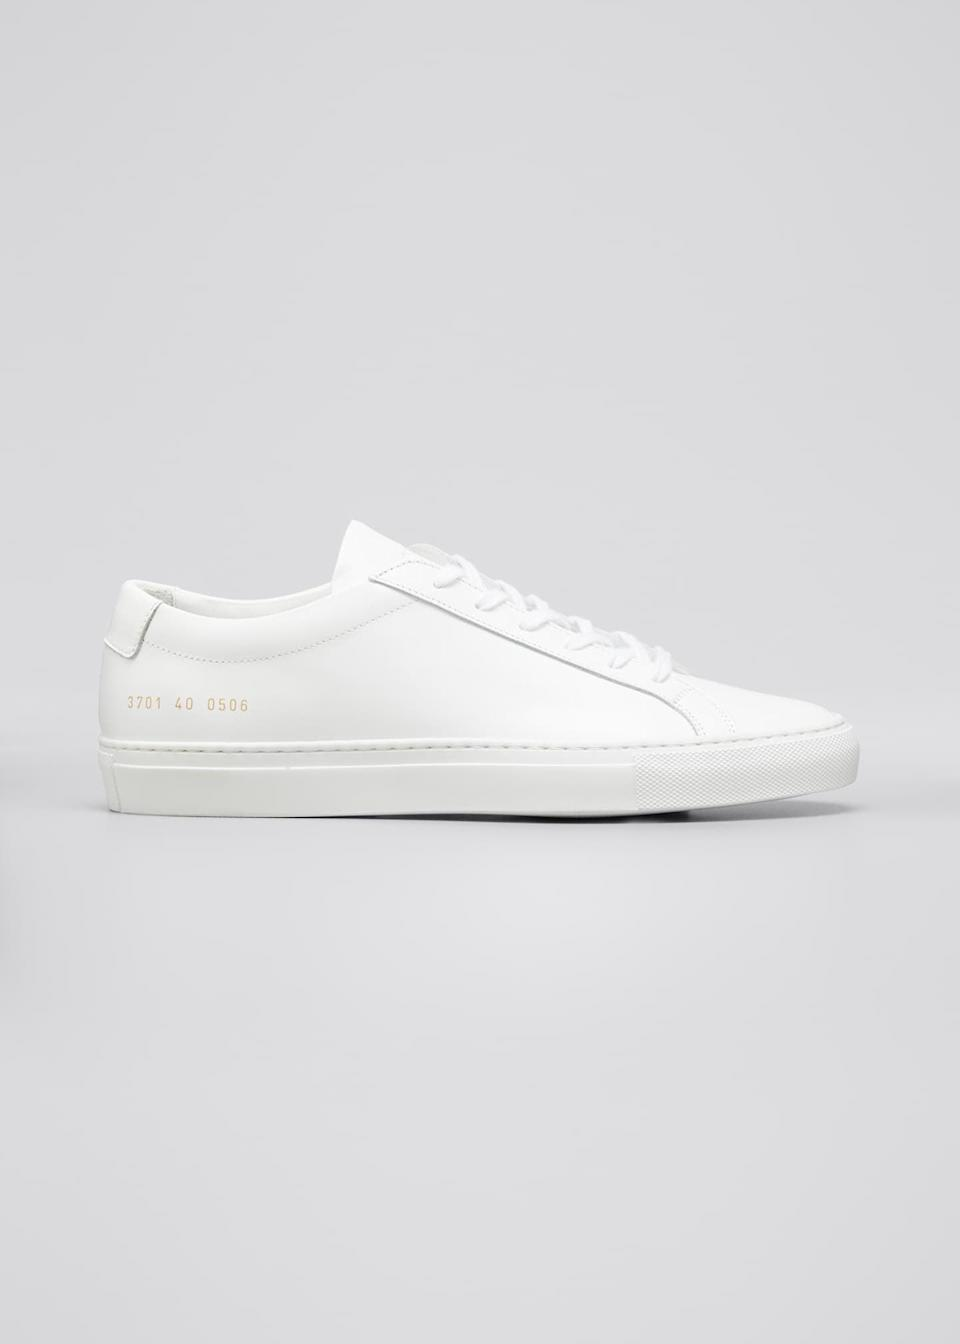 """<p>""""I am fanatical about casual white shoes. Converse, Vans, Keds, canvas, leather, textured, high-top, low-top - I love them all. My favorite pair of white sneakers, though? Hands down, <span>Common Projects Achilles Leather Low-Top Sneakers</span> ($425). They are pricey, but they are easy to clean (important when you live in Portland, the mud capital of America) and shockingly durable. I've had mine for years, and I still slip into them weekly."""" - Maggie Panos, senior editor, Voices</p> <p>""""These are not only my favorite white sneakers, but my favorite shoe period. They're certainly not cheap, but I think the sleek Italian leather and durability (I've had mine for five years!) make the price tag worth it. I promise they look as good with a pair of leggings or sweats as they do with a dress or tailored trousers."""" - Yerin Kim, associate editor, Trending and Viral Features</p>"""